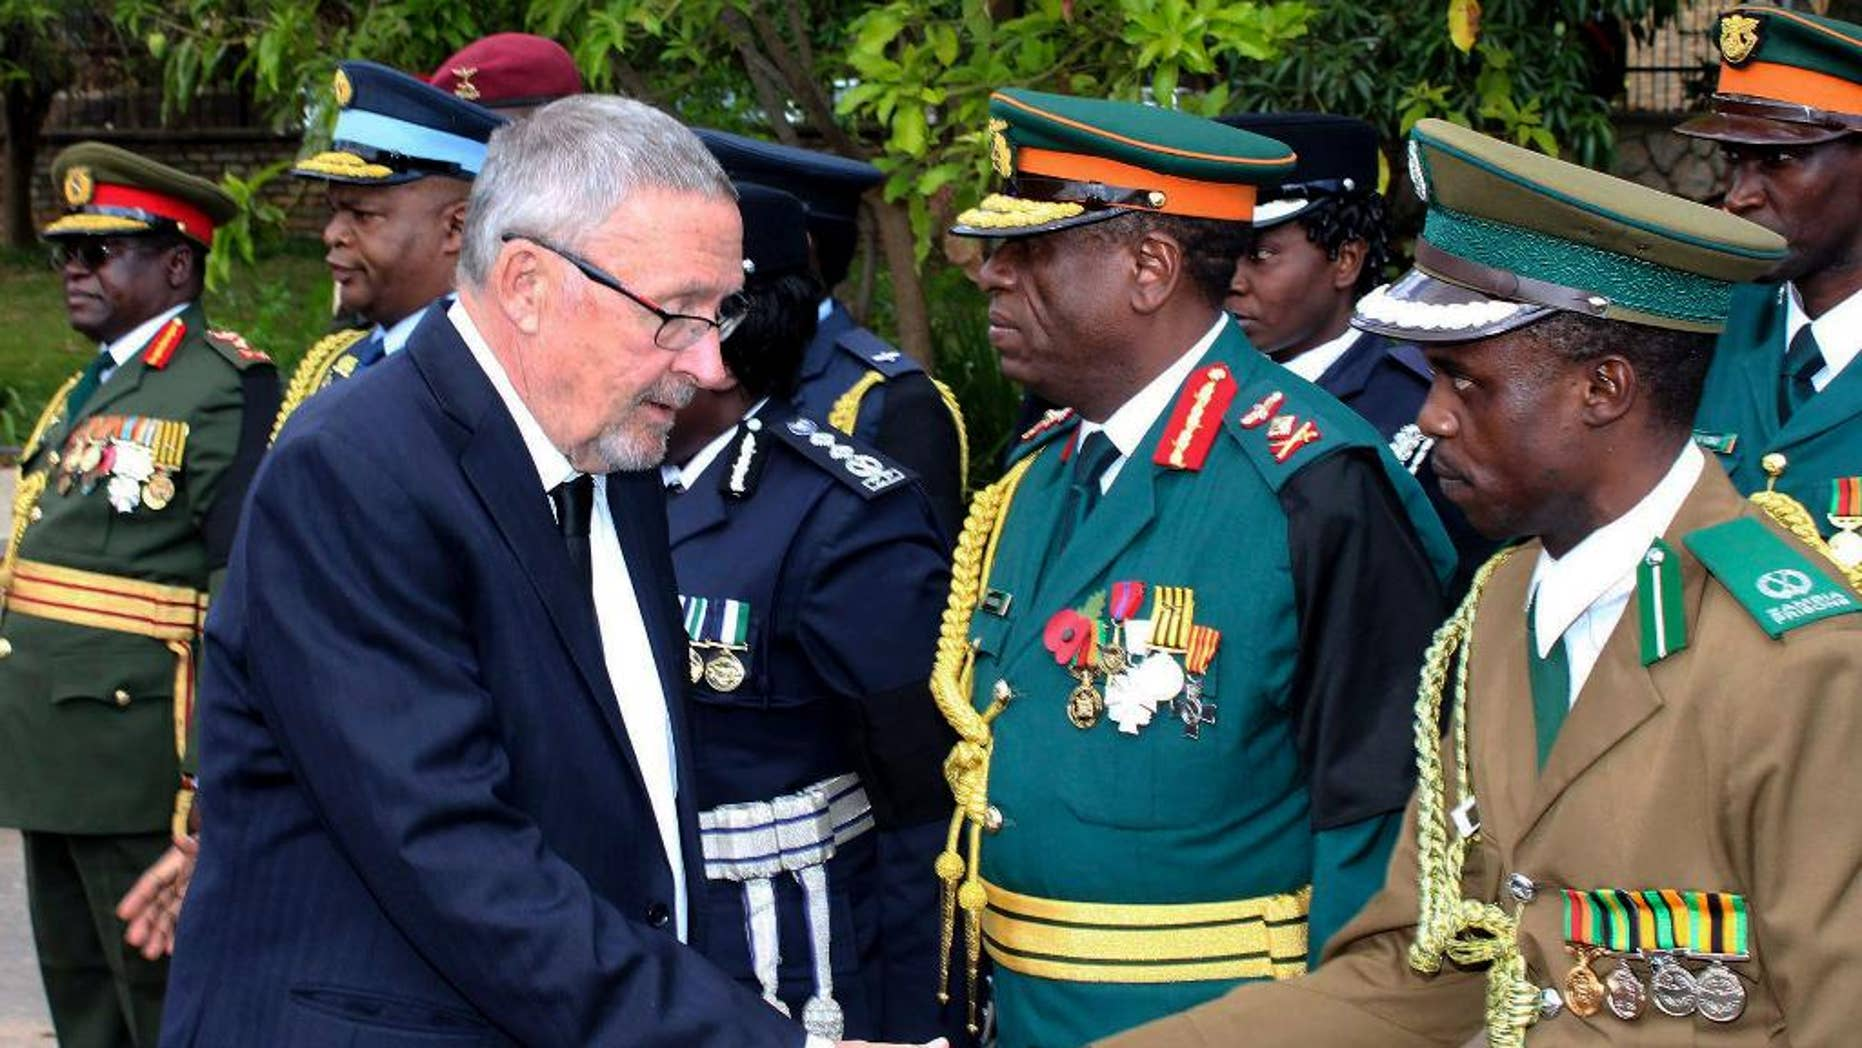 Zambia's vice president Guy Scott greets defense and security chiefs shortly after taking over as acting president, following the death in London on late Tuesday of President Michael Sata, Lusaka, Wednesday, Oct. 29, 2014. Scott, a white Zambian of Scottish descent, became the country's acting president on Wednesday, making him the first white leader of a sub-Saharan African nation since F.W. de Klerk, the apartheid-era head of South Africa who was voted out of power in 1994. (AP Photo)